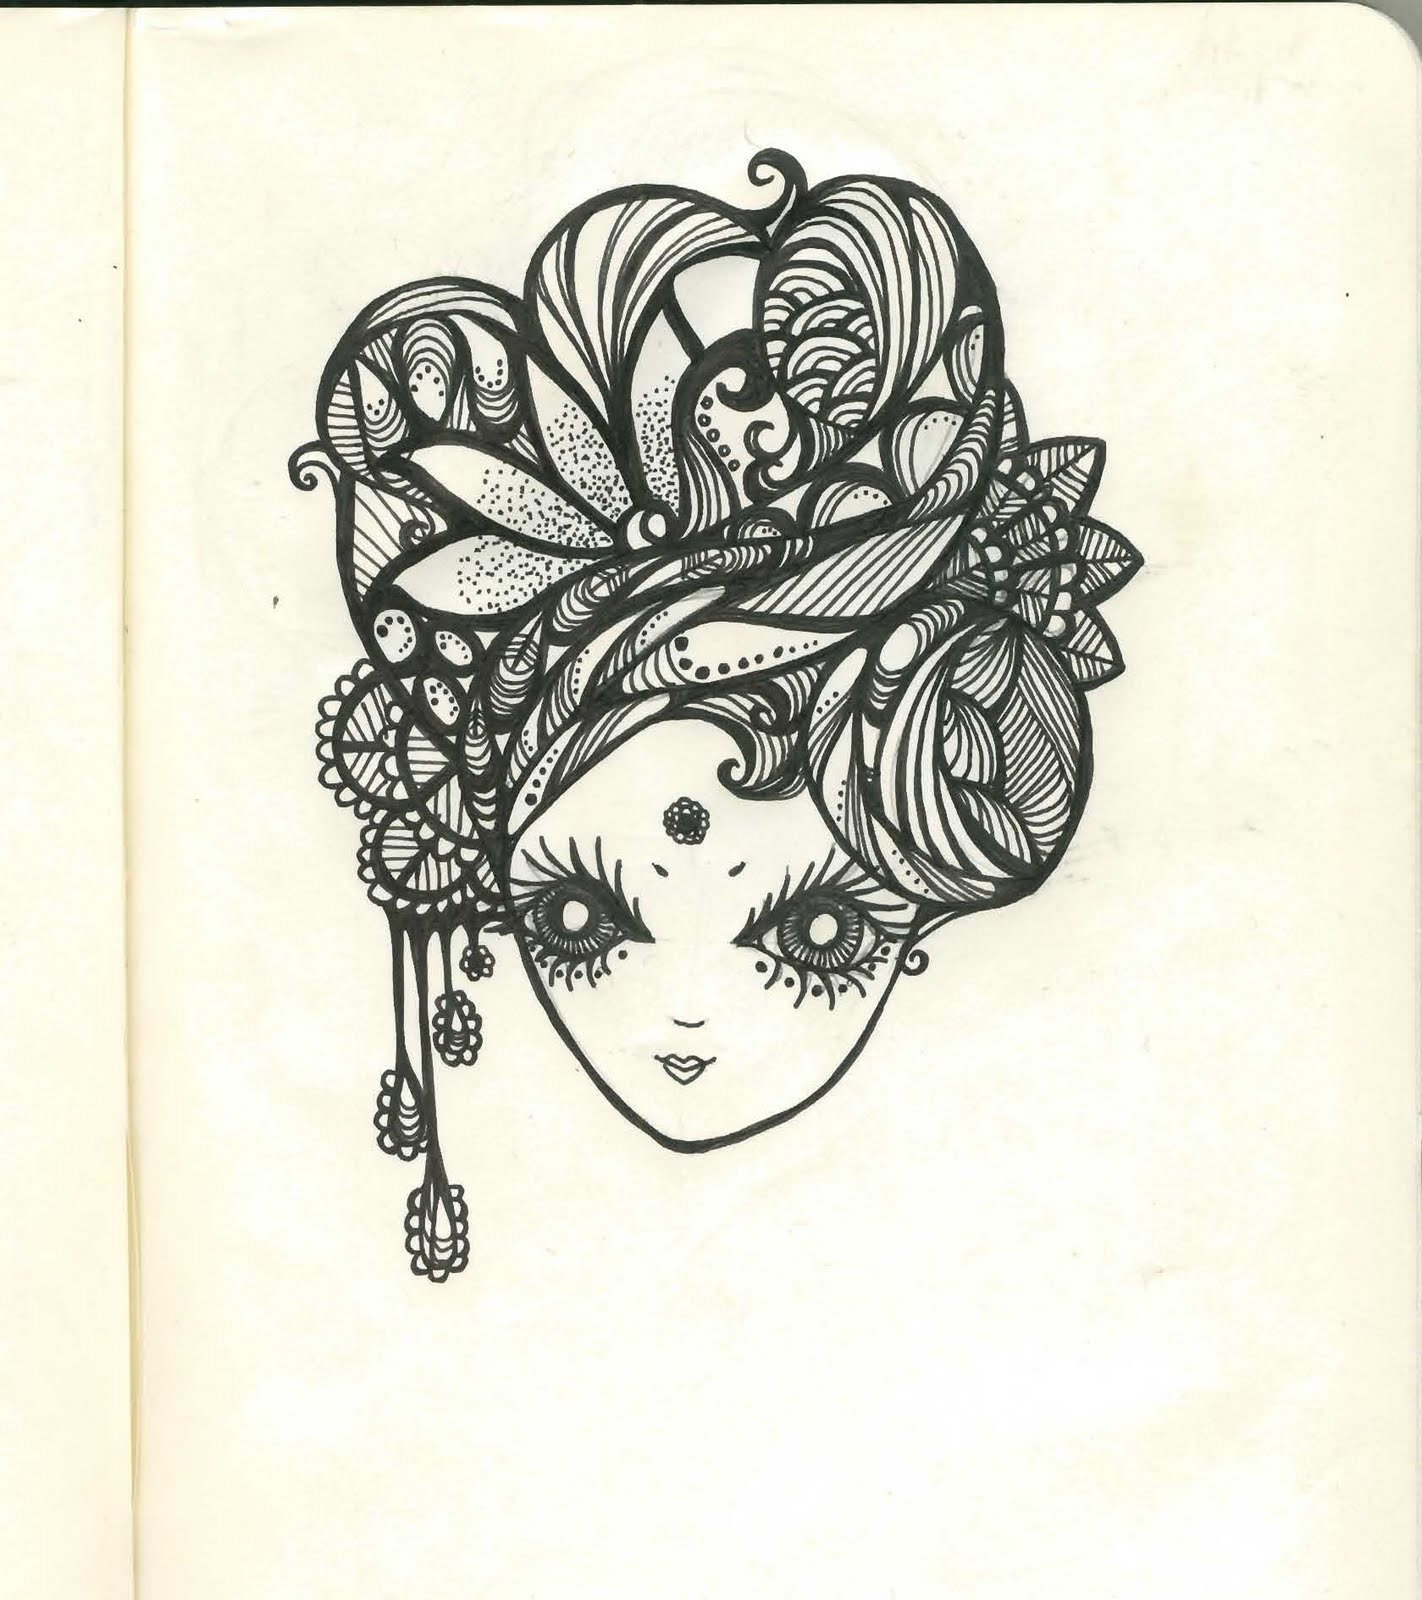 Grace Firmansjah: Pretty Faces Drawings (Sketchbook Edition